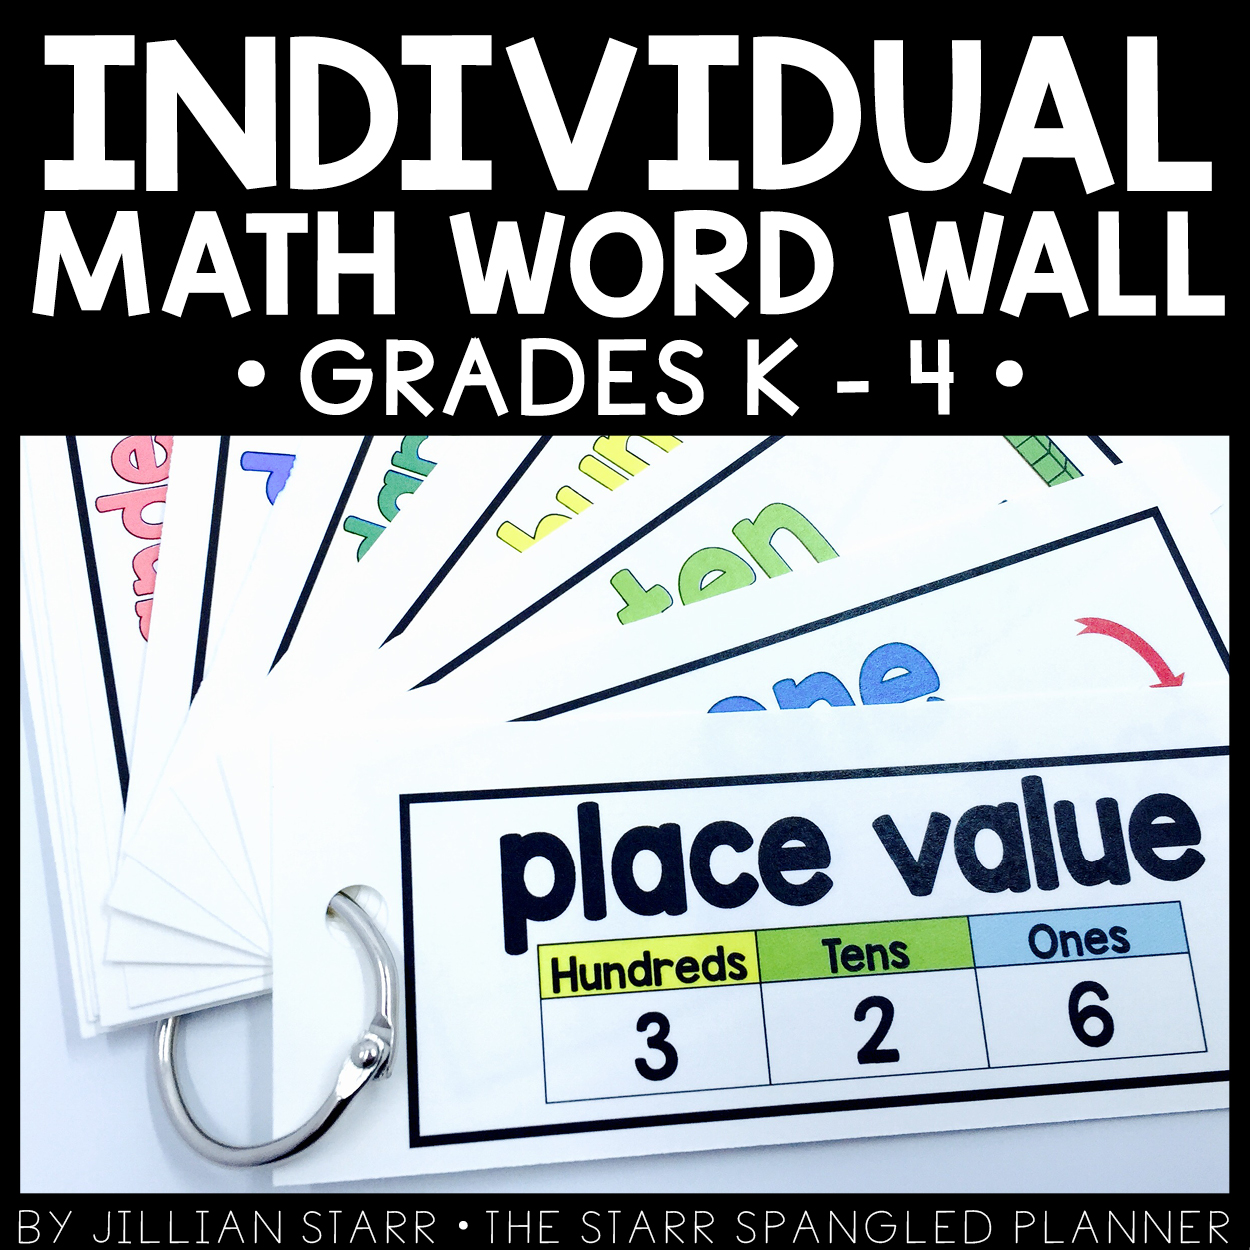 FOUR Spanish Word Walls to visually support students all year long